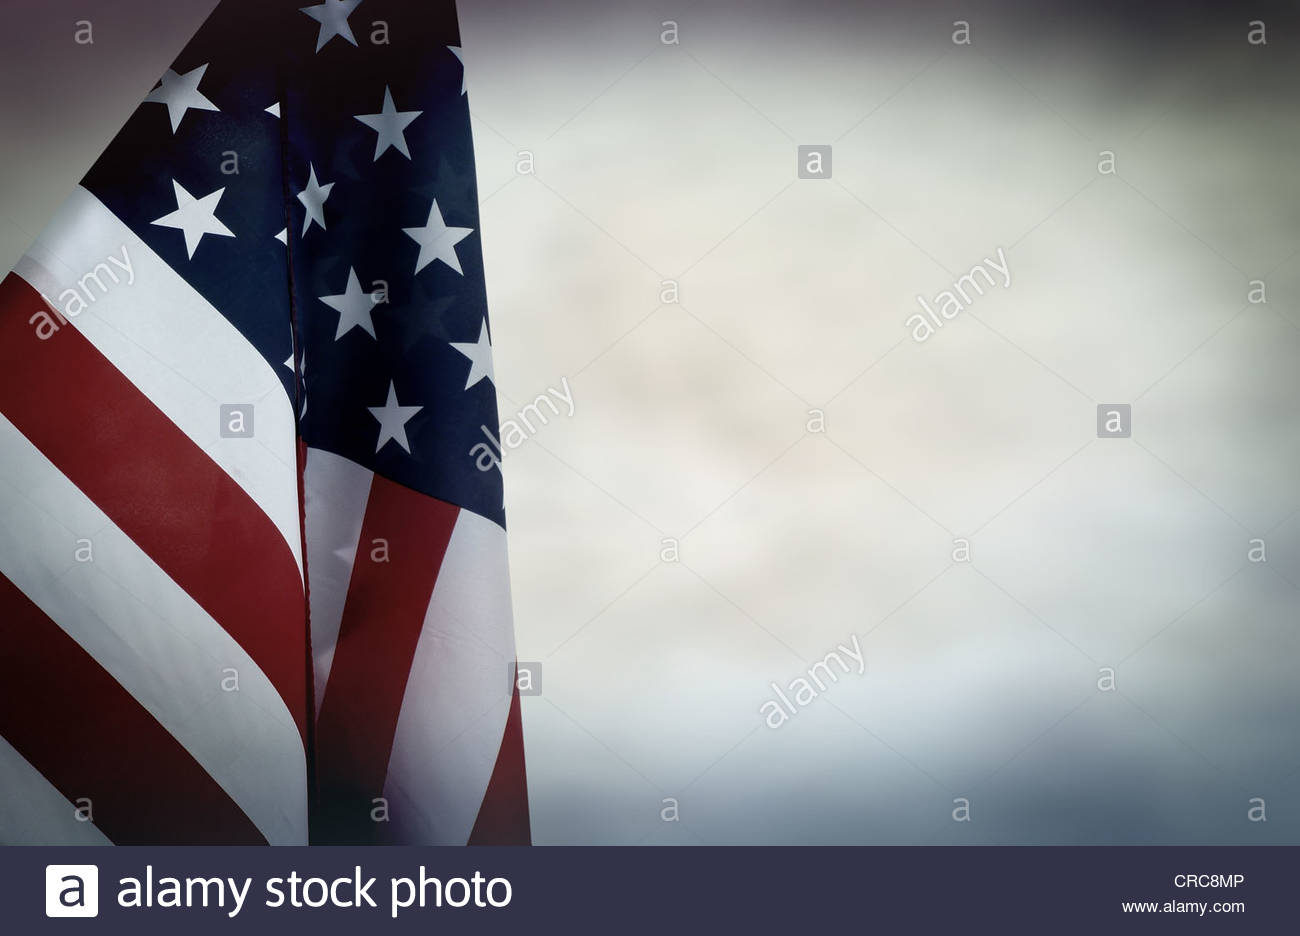 US flag backdrop - Stock Image